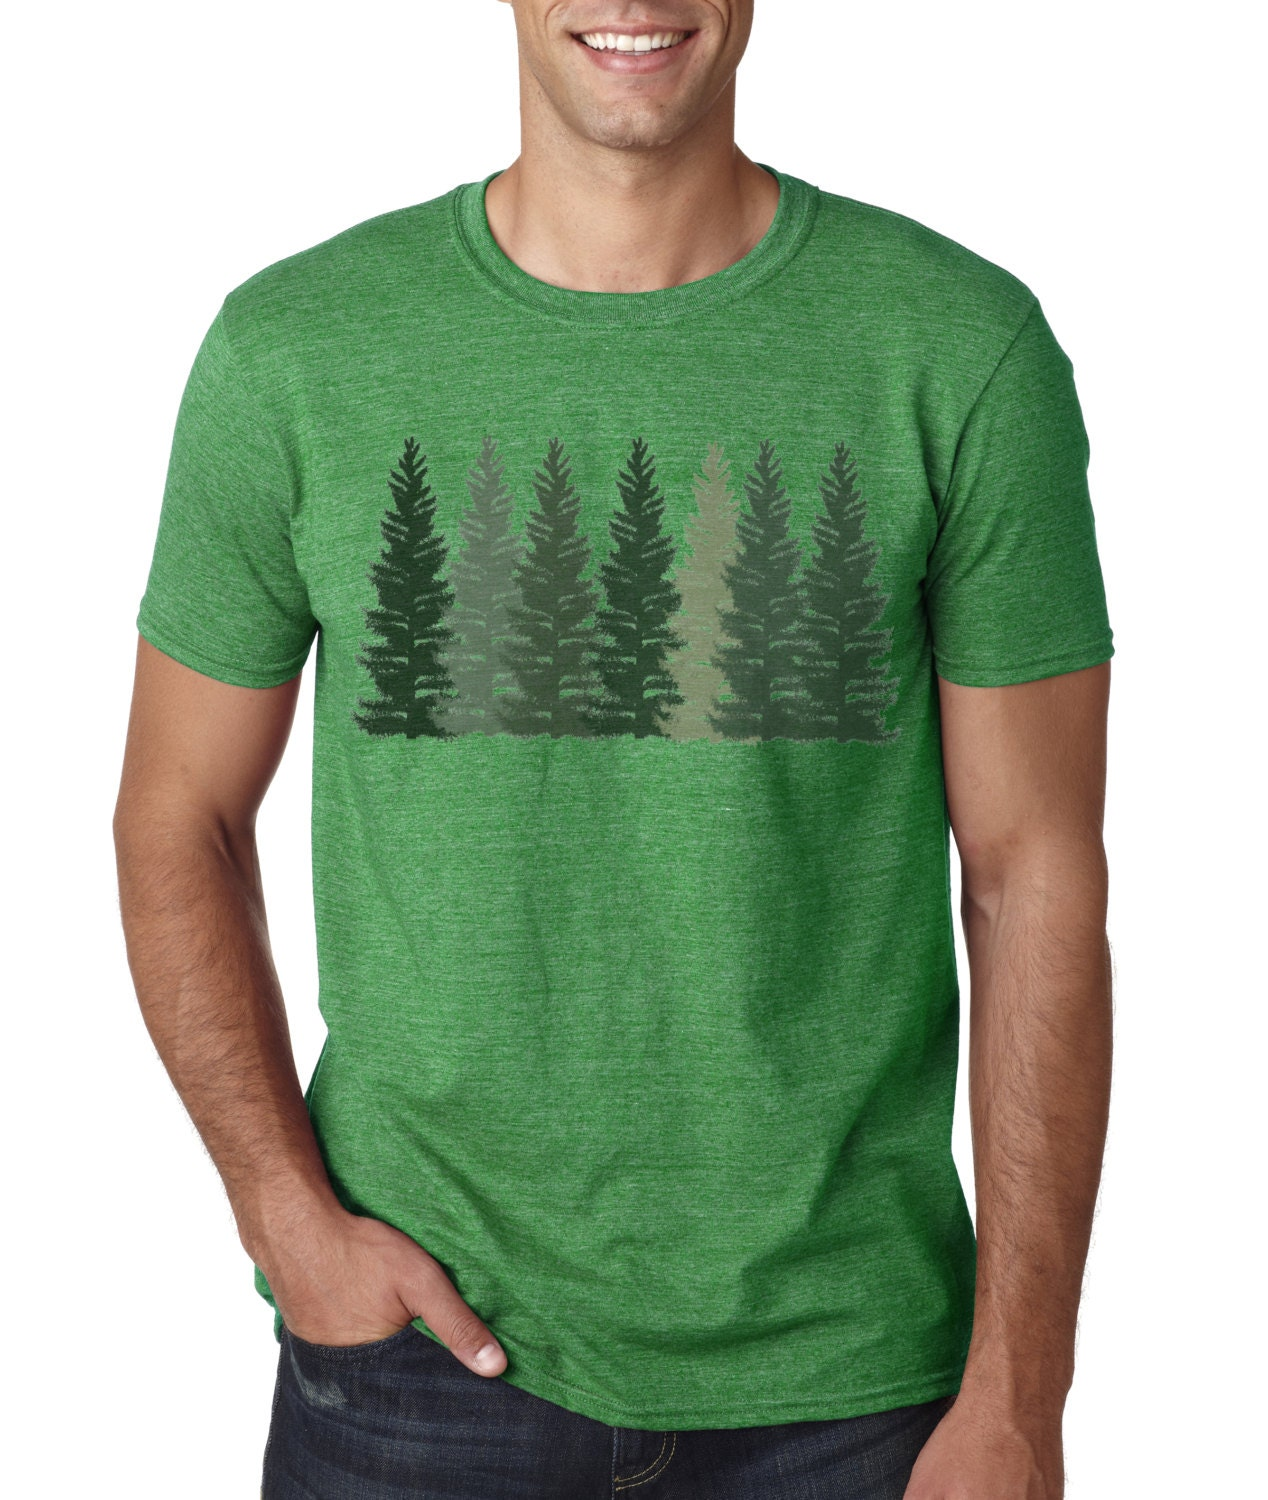 Design your own t shirt gold coast